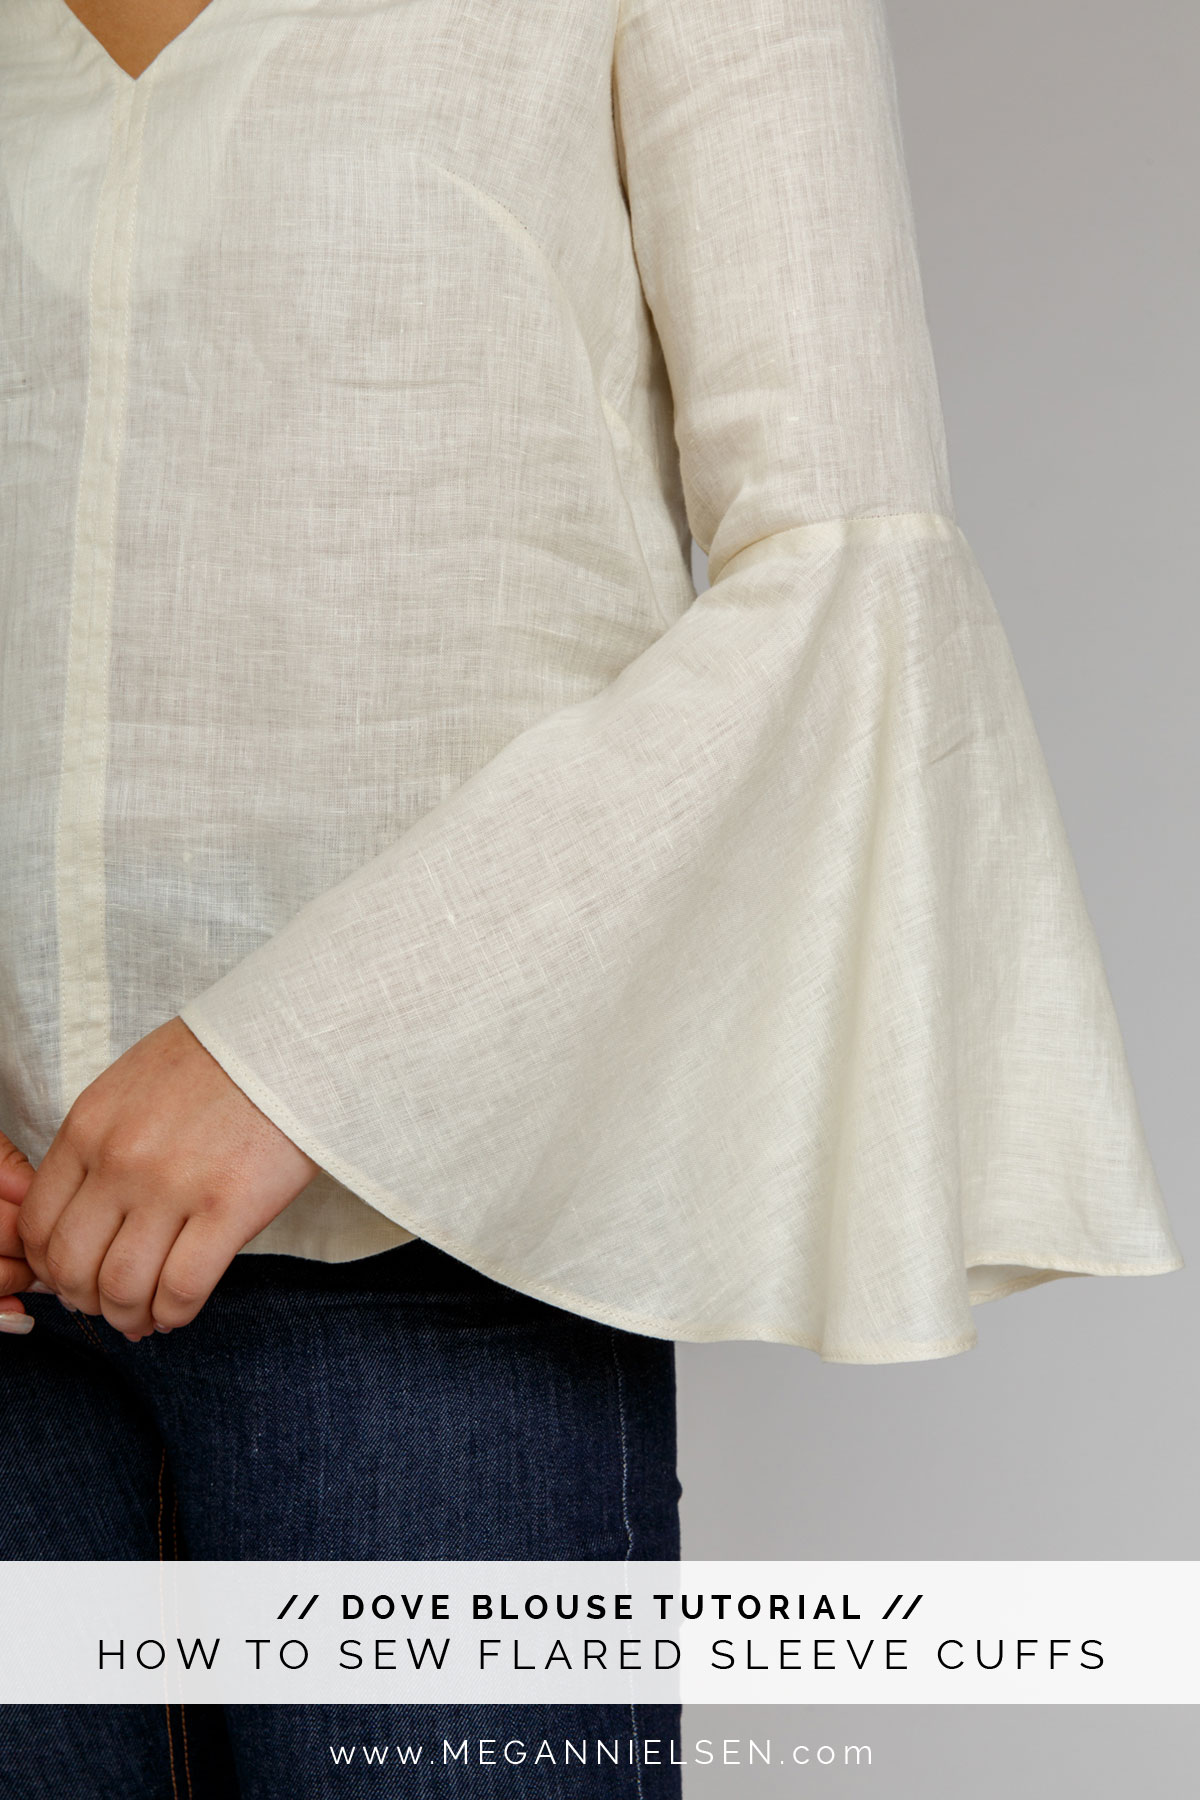 How to sew flared and bell sleeve cuffs! Thorough tutorial by Megan Nielsen Patterns shown on the Dove Blouse sewing pattern